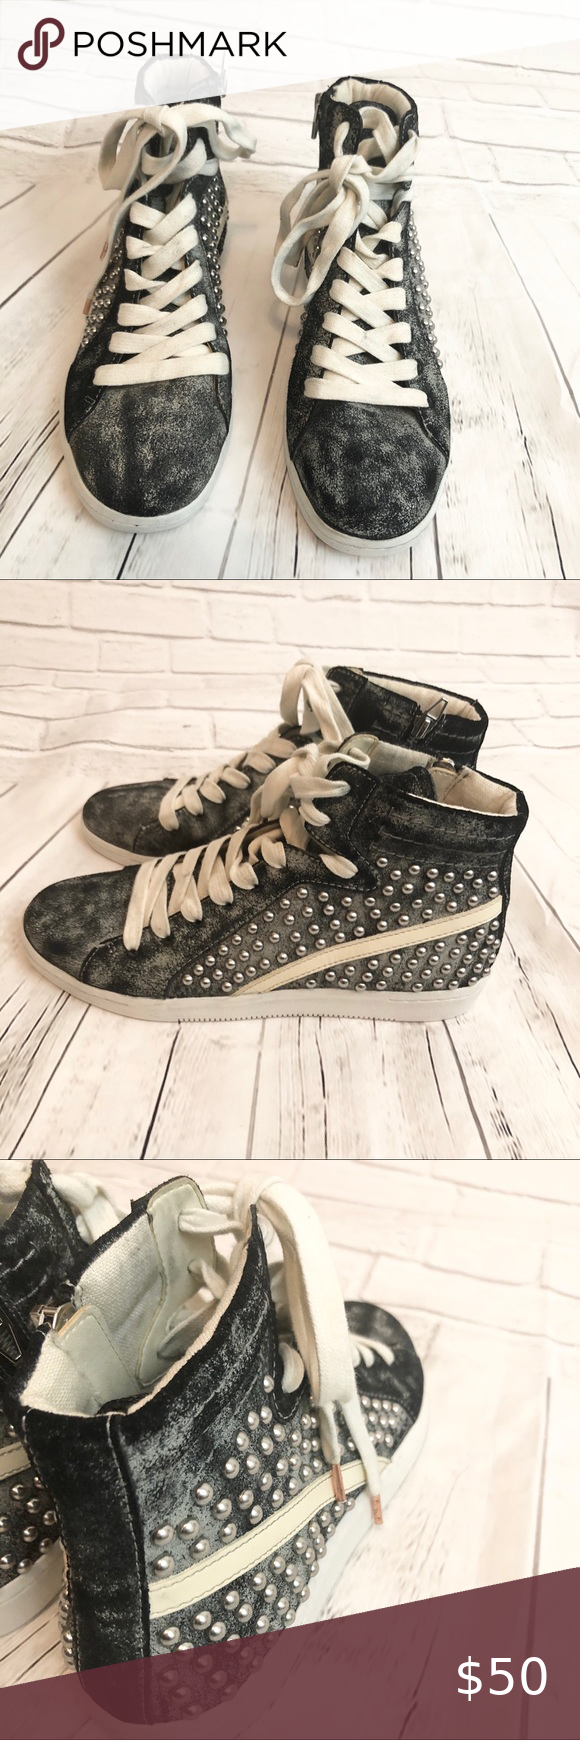 Dolce Vita Natty Studded Sneakers in